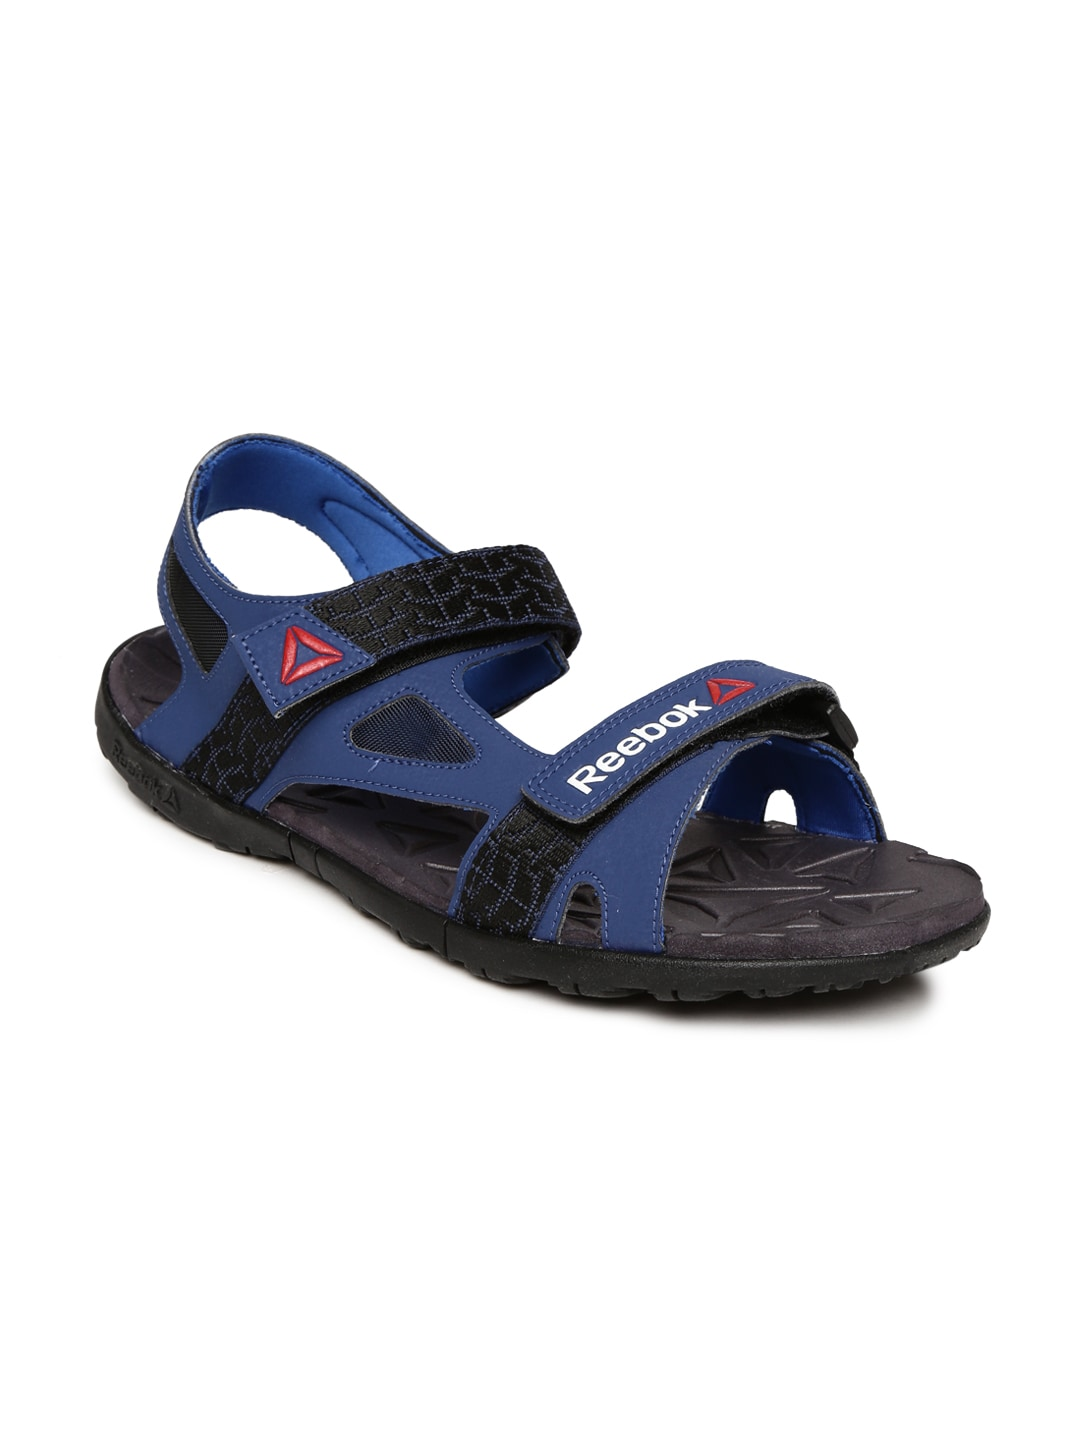 65cf763dc Reebok Floaters - Buy Reebok Sports Sandals online in India